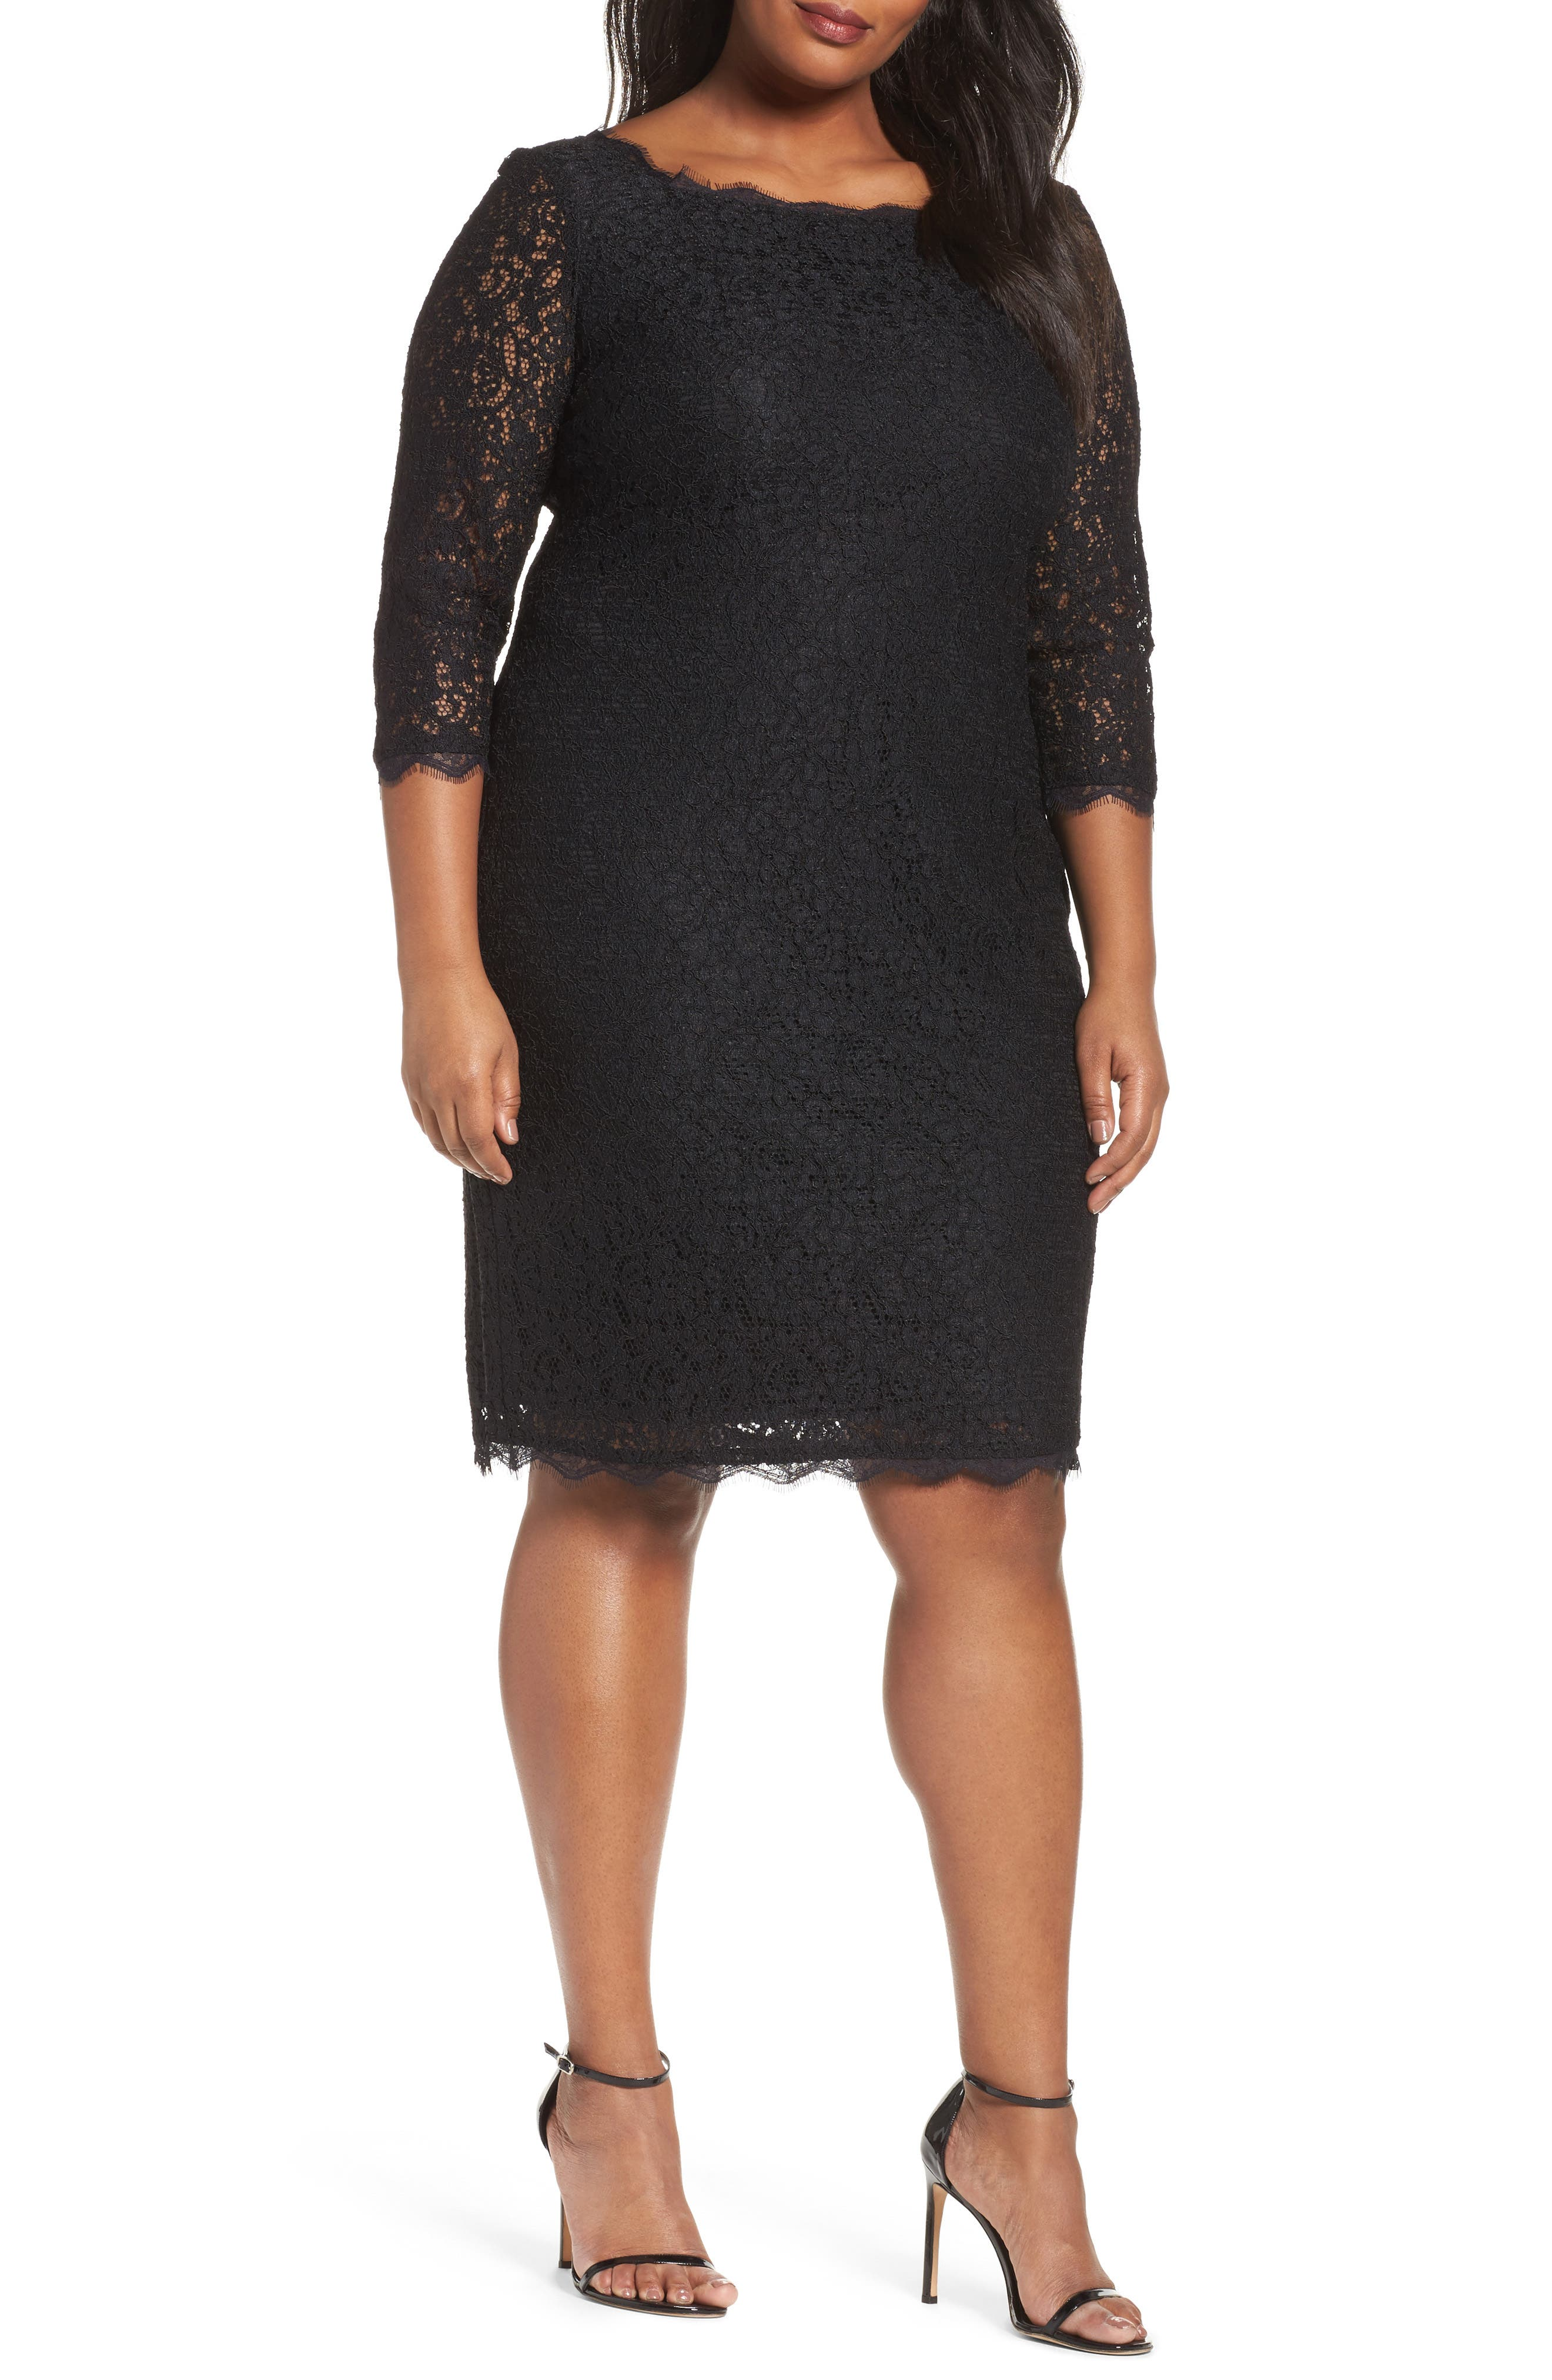 Alternate Image 1 Selected - Adrianna Papell Lace Overlay Sheath Dress (Plus Size)